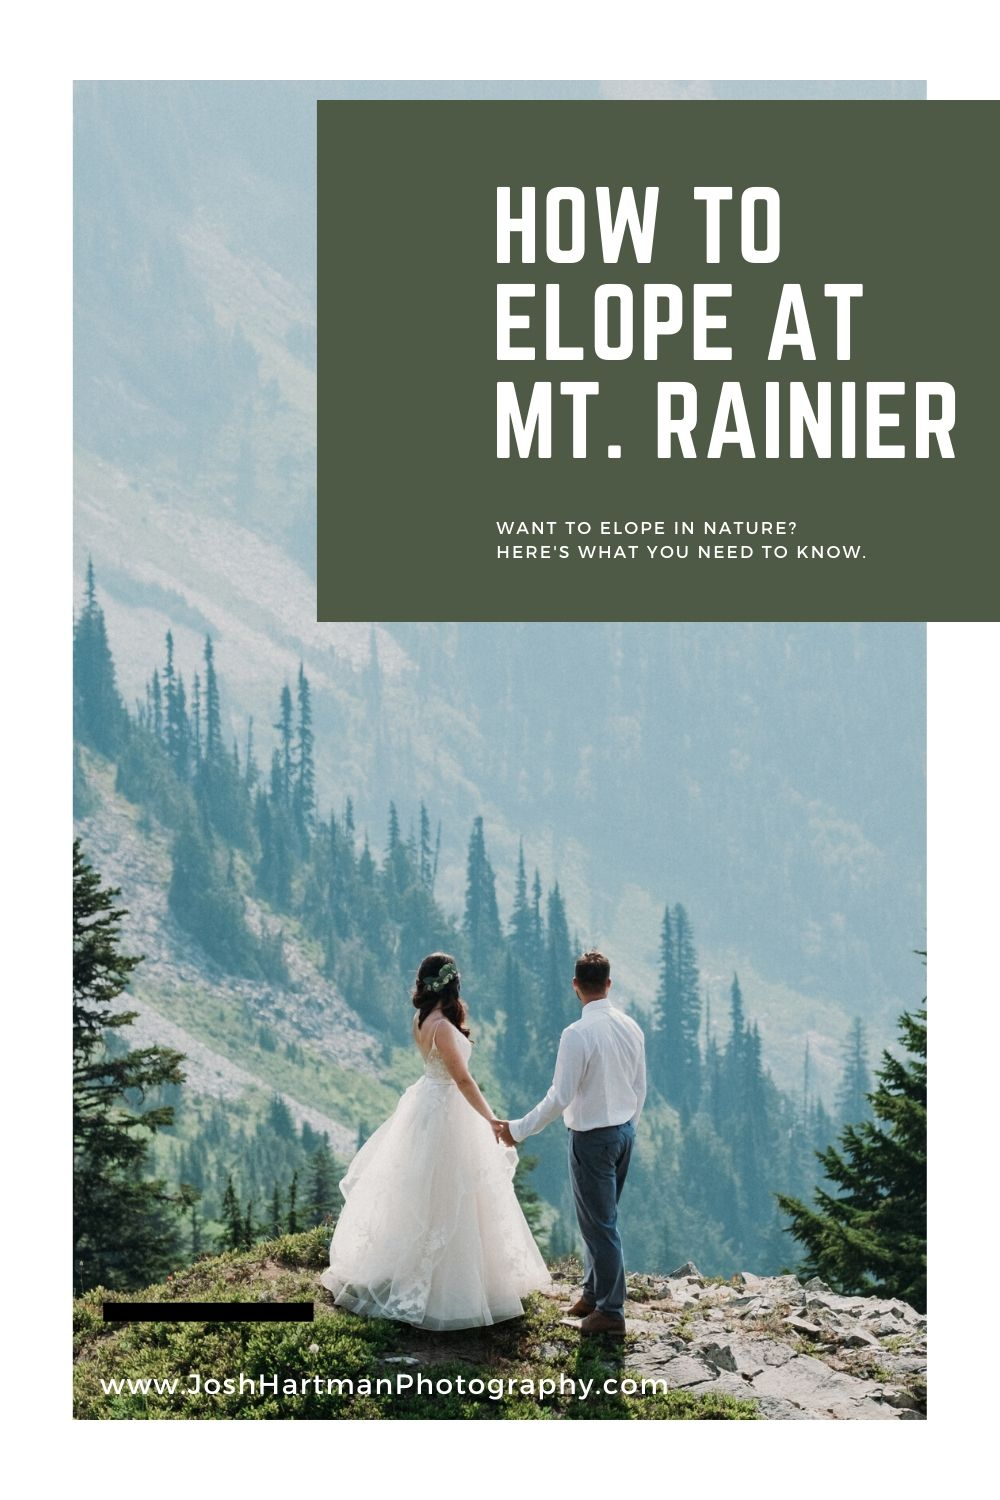 How to Elope at Mt. Rainier